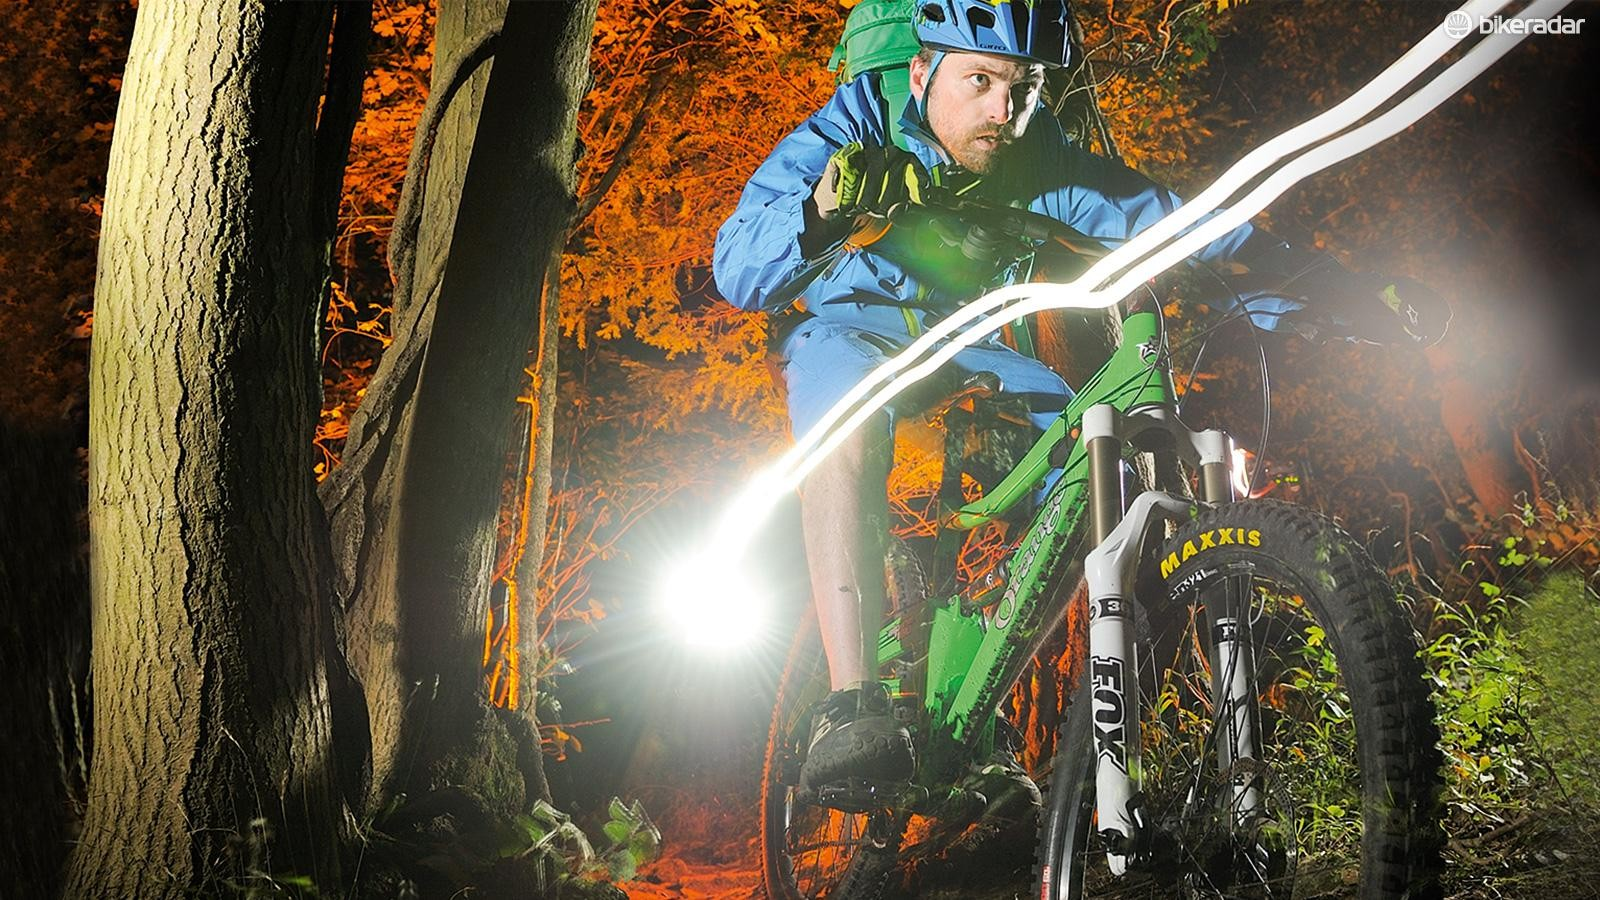 Don't let the dark evenings keep you off of the trails